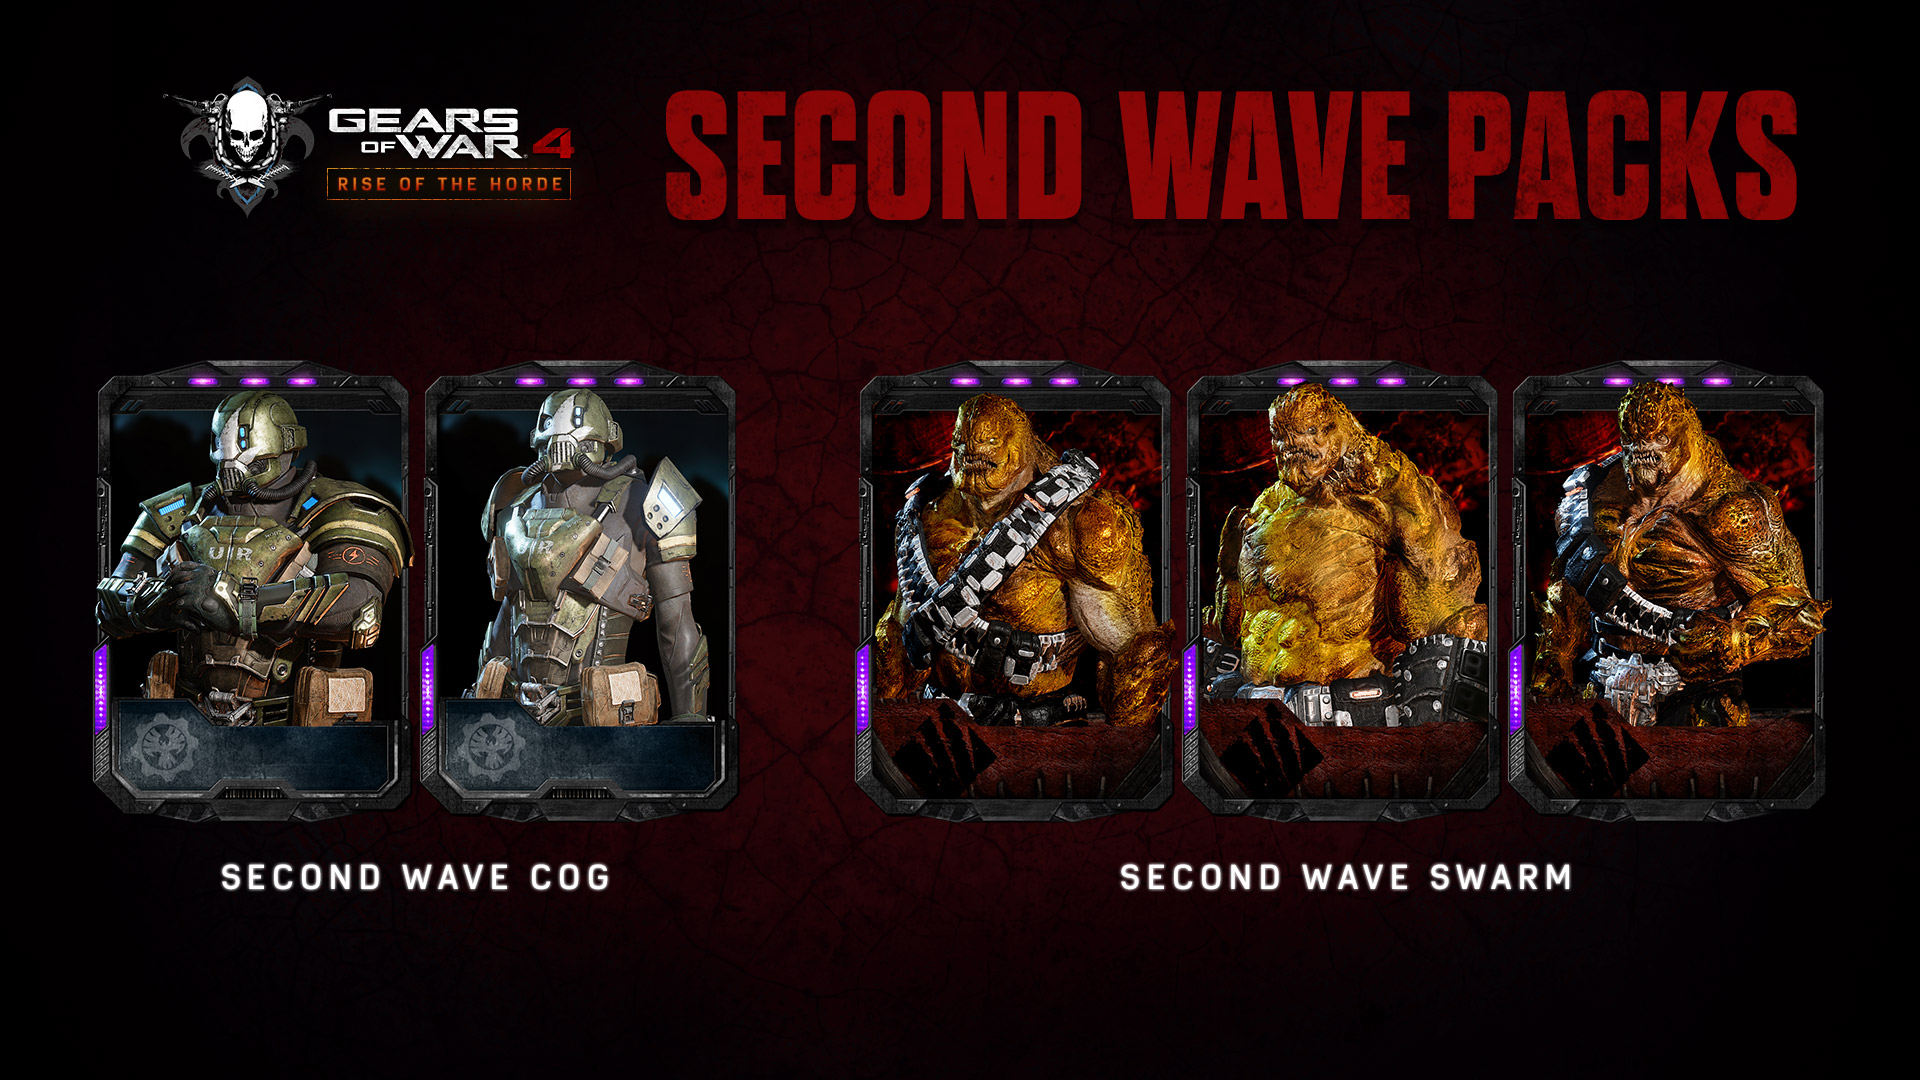 second wave packs